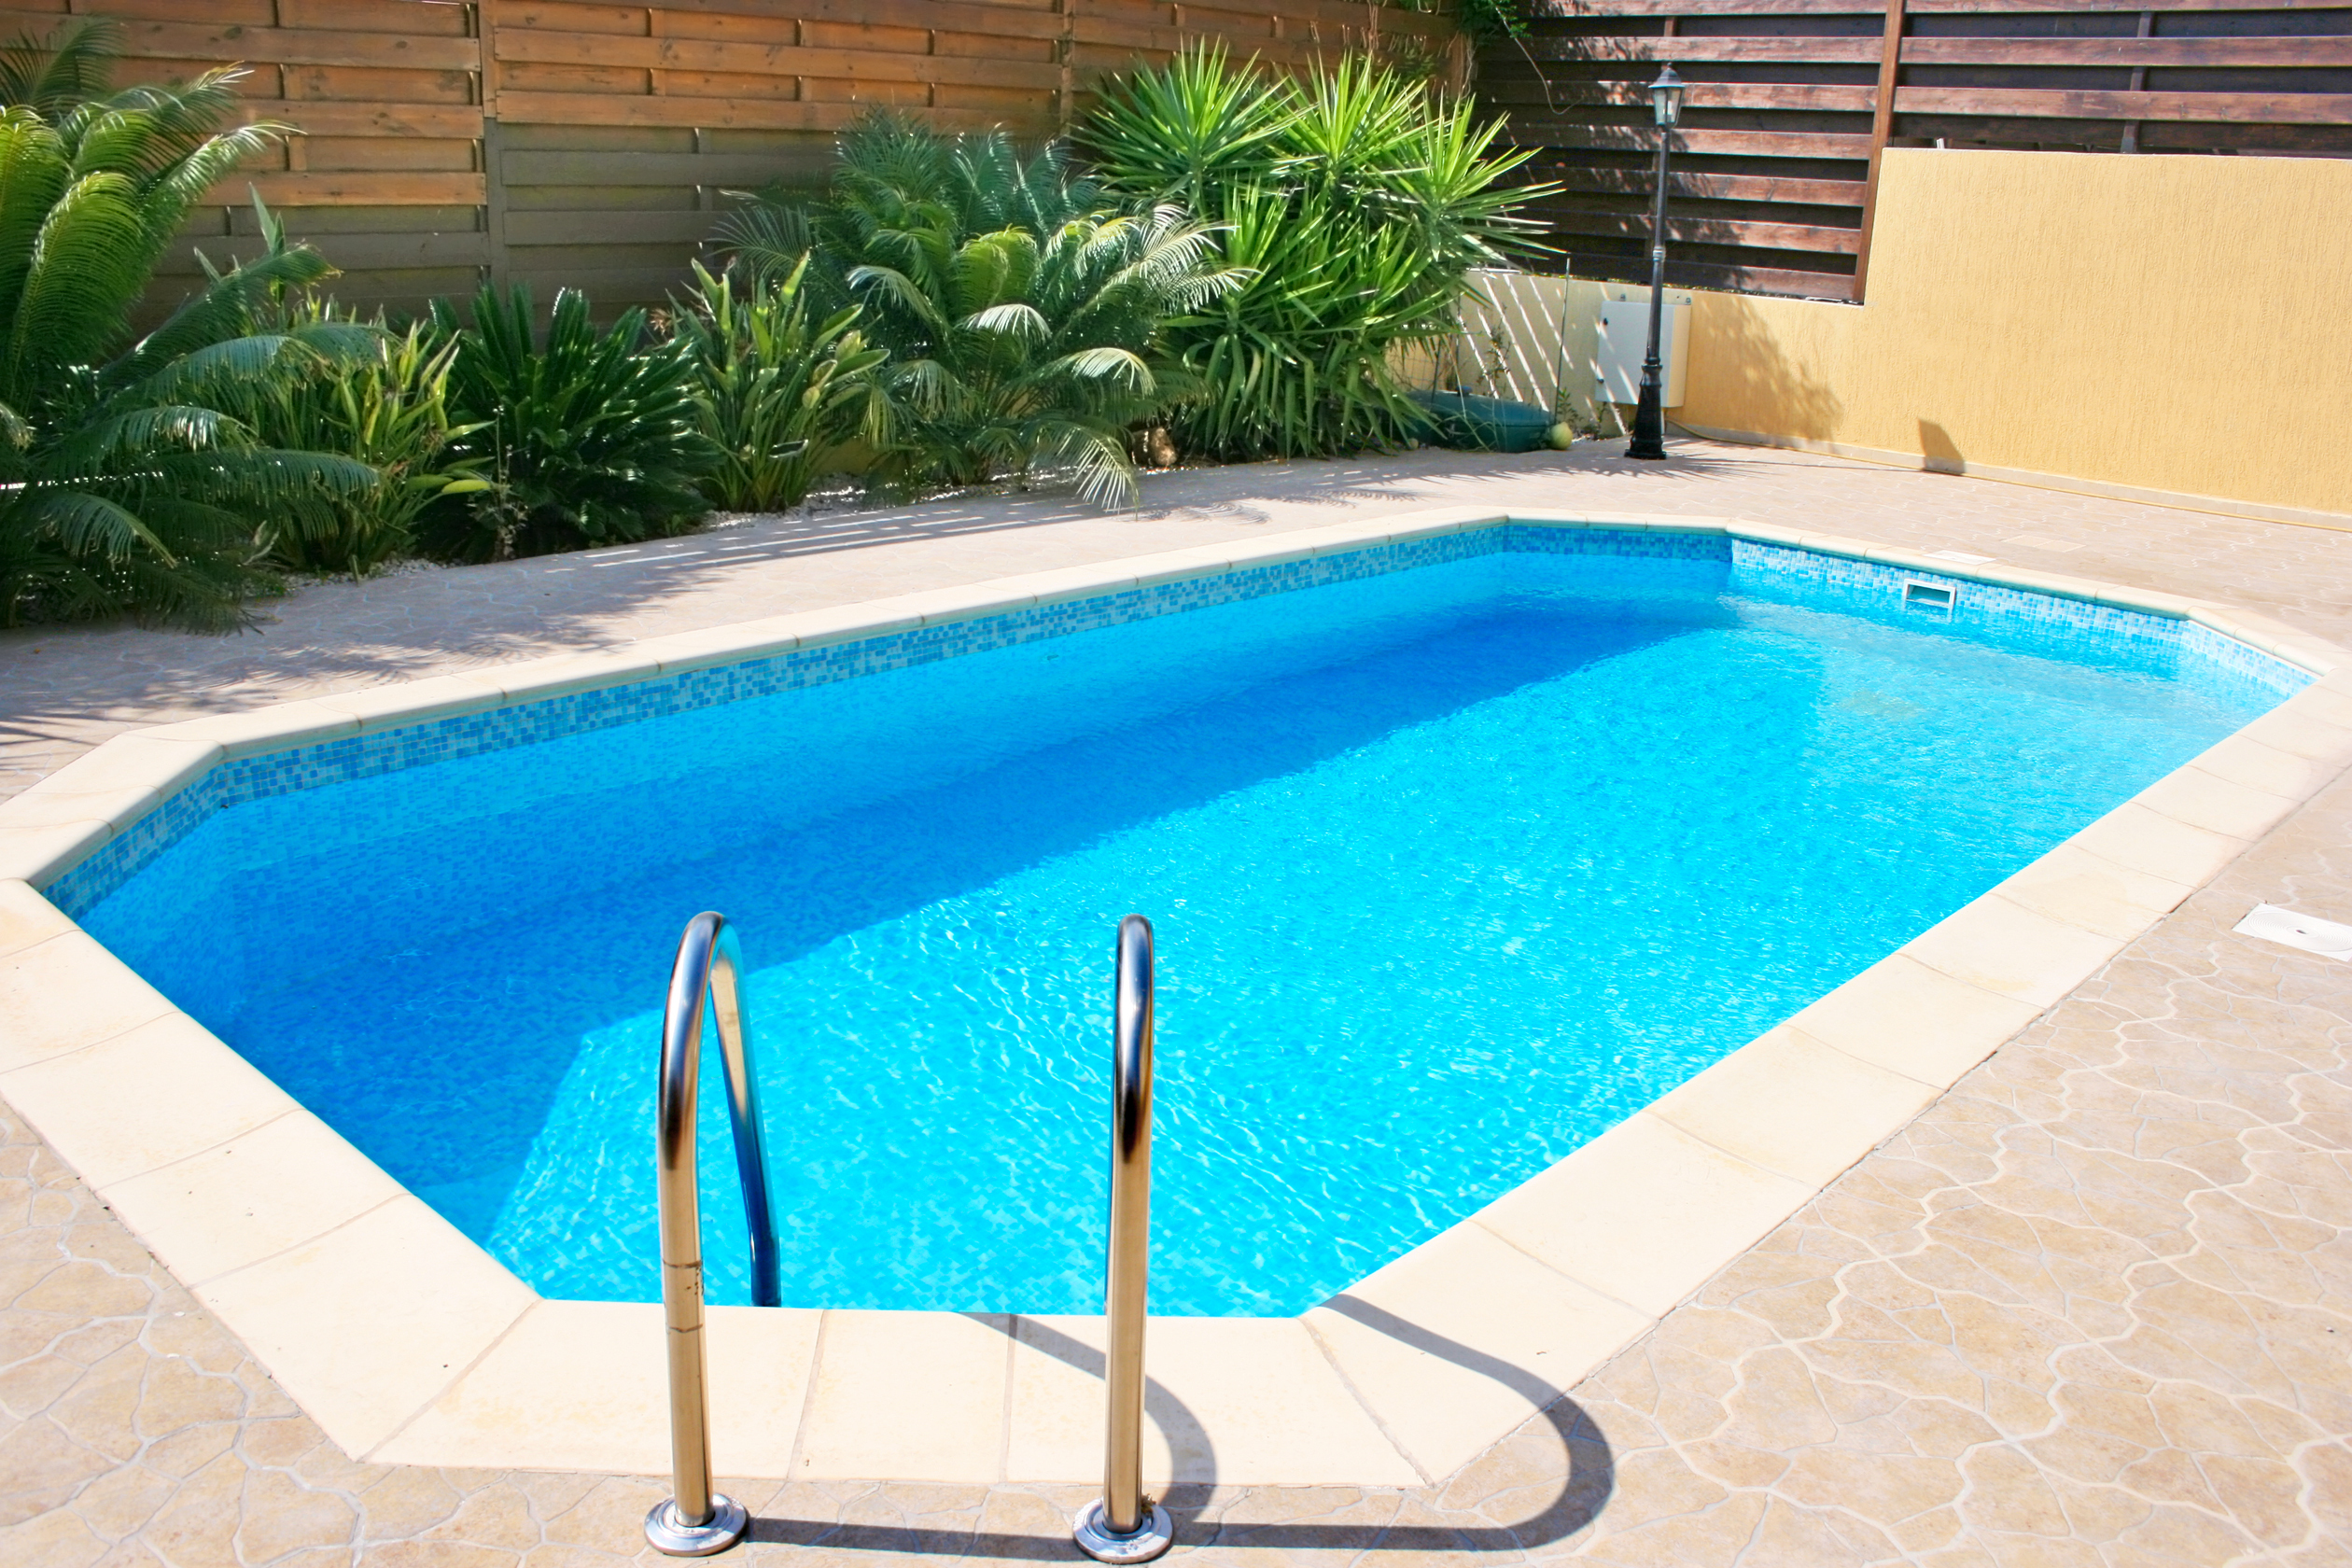 Piscines murat piscines traditionnelles fabrication et for Fabrication piscine beton